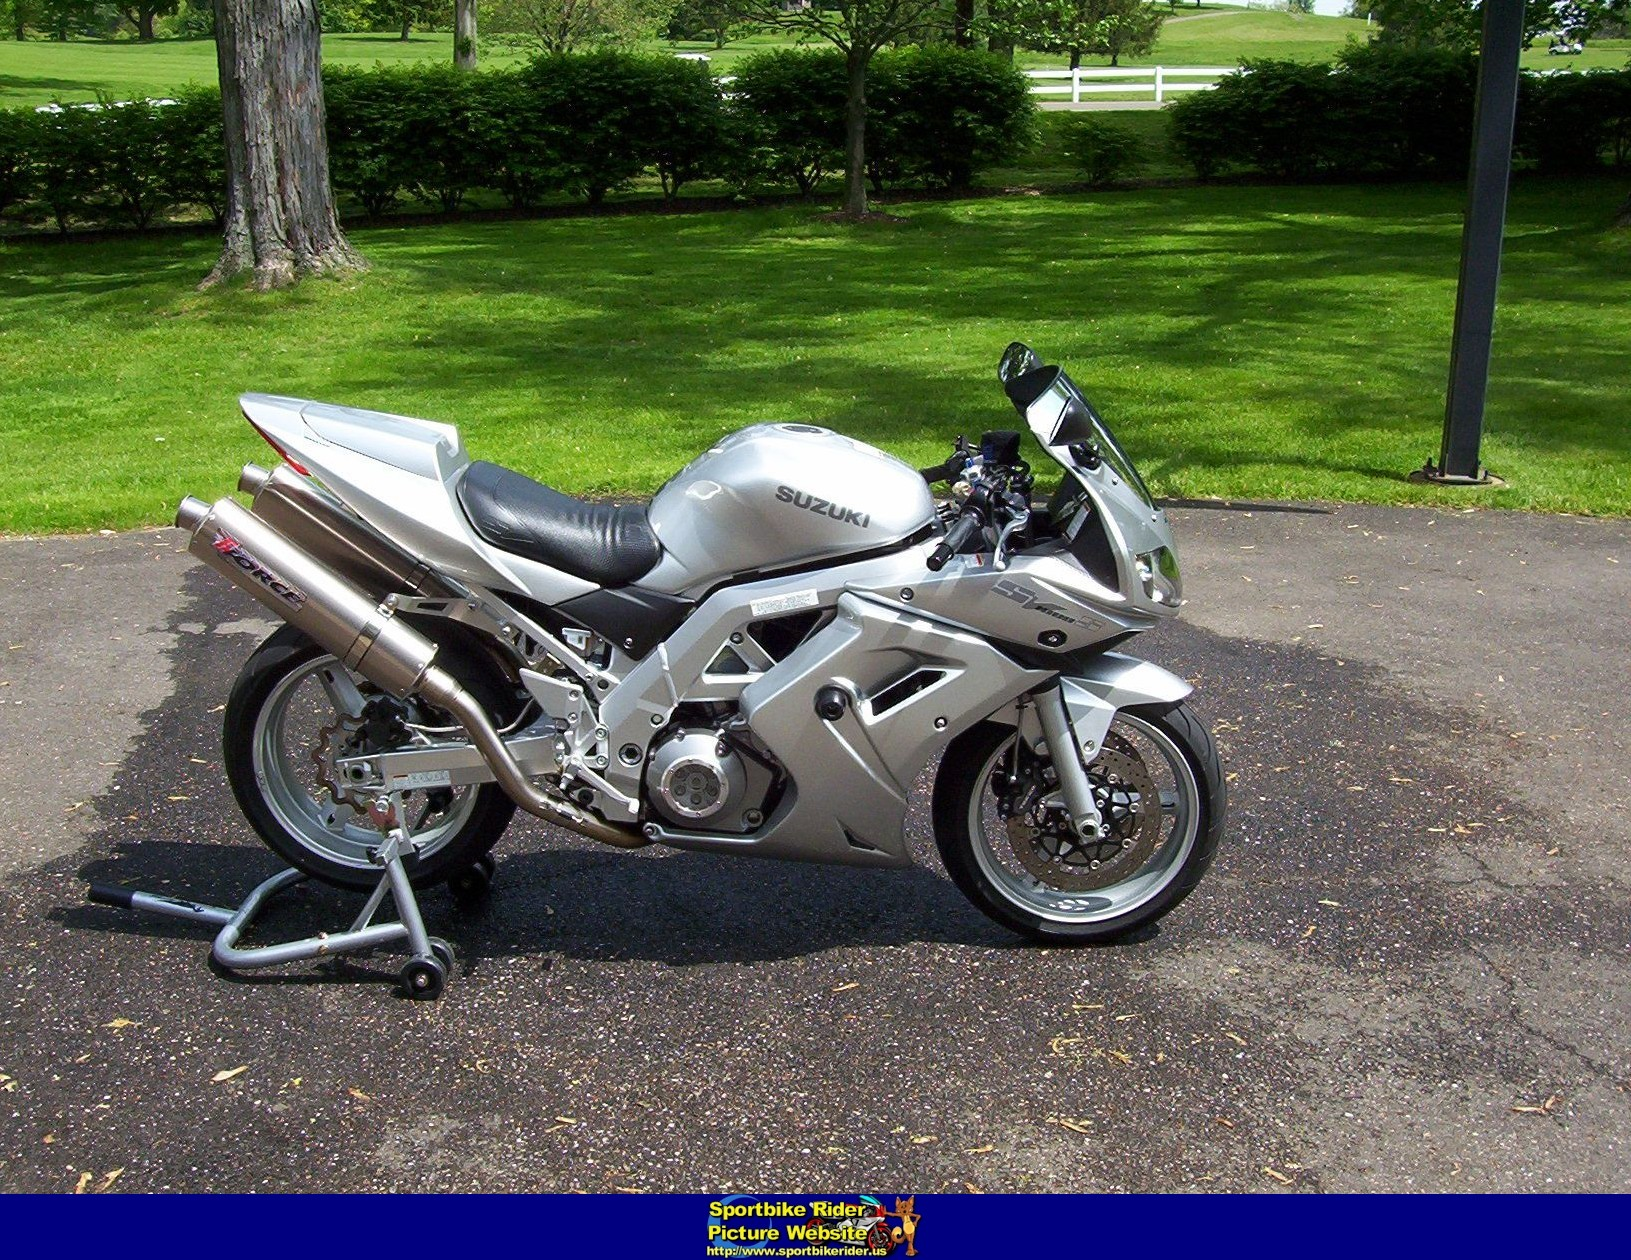 Used 2003 SUZUKI SV 1000 S for sale at online auction   RAW2K